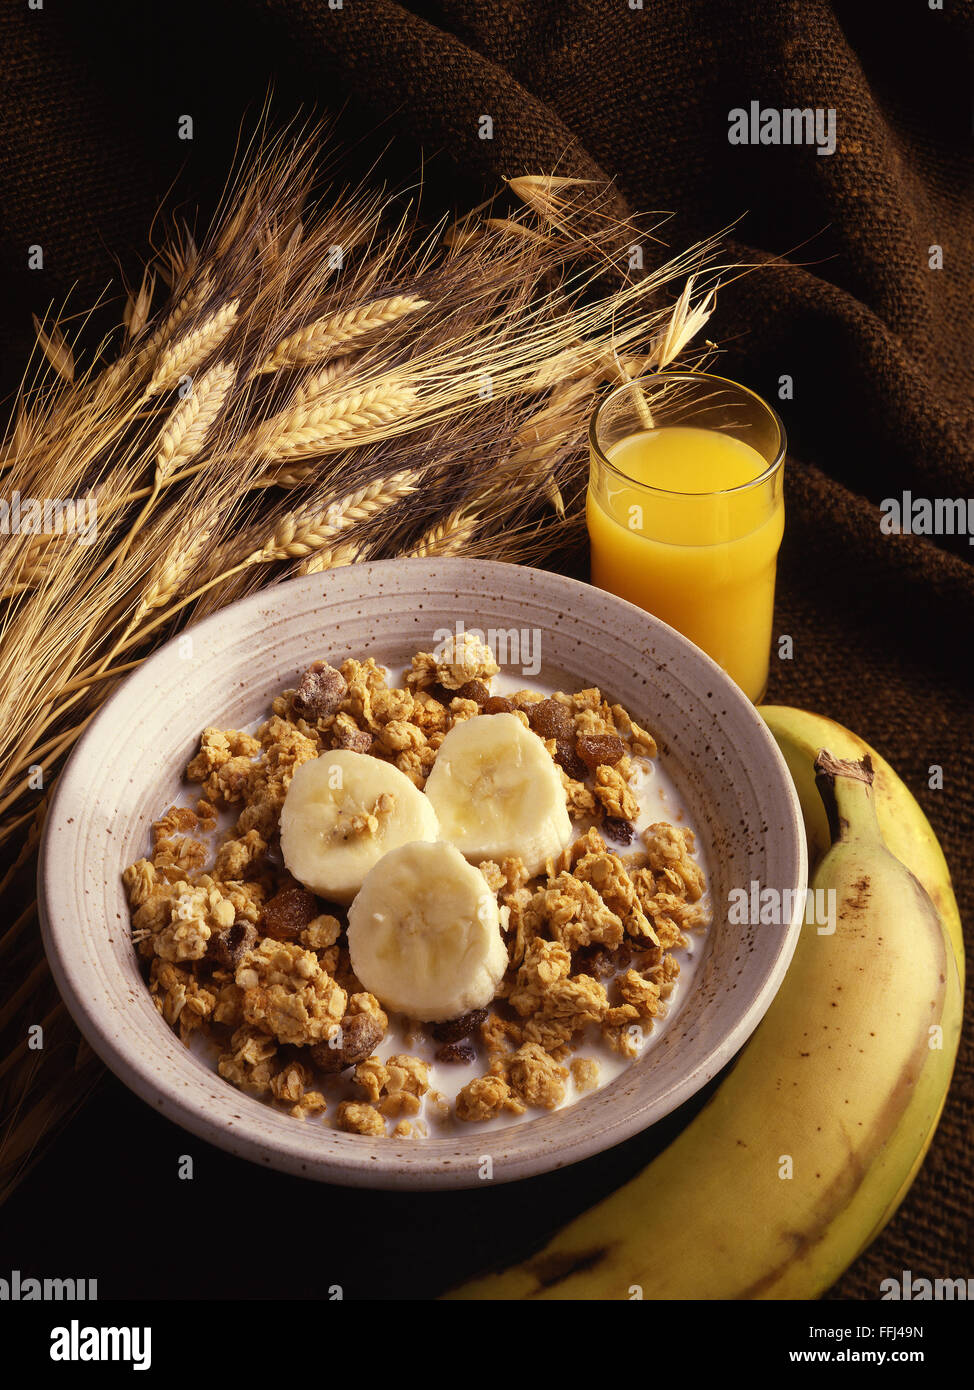 crunchy granola cereal - Stock Image